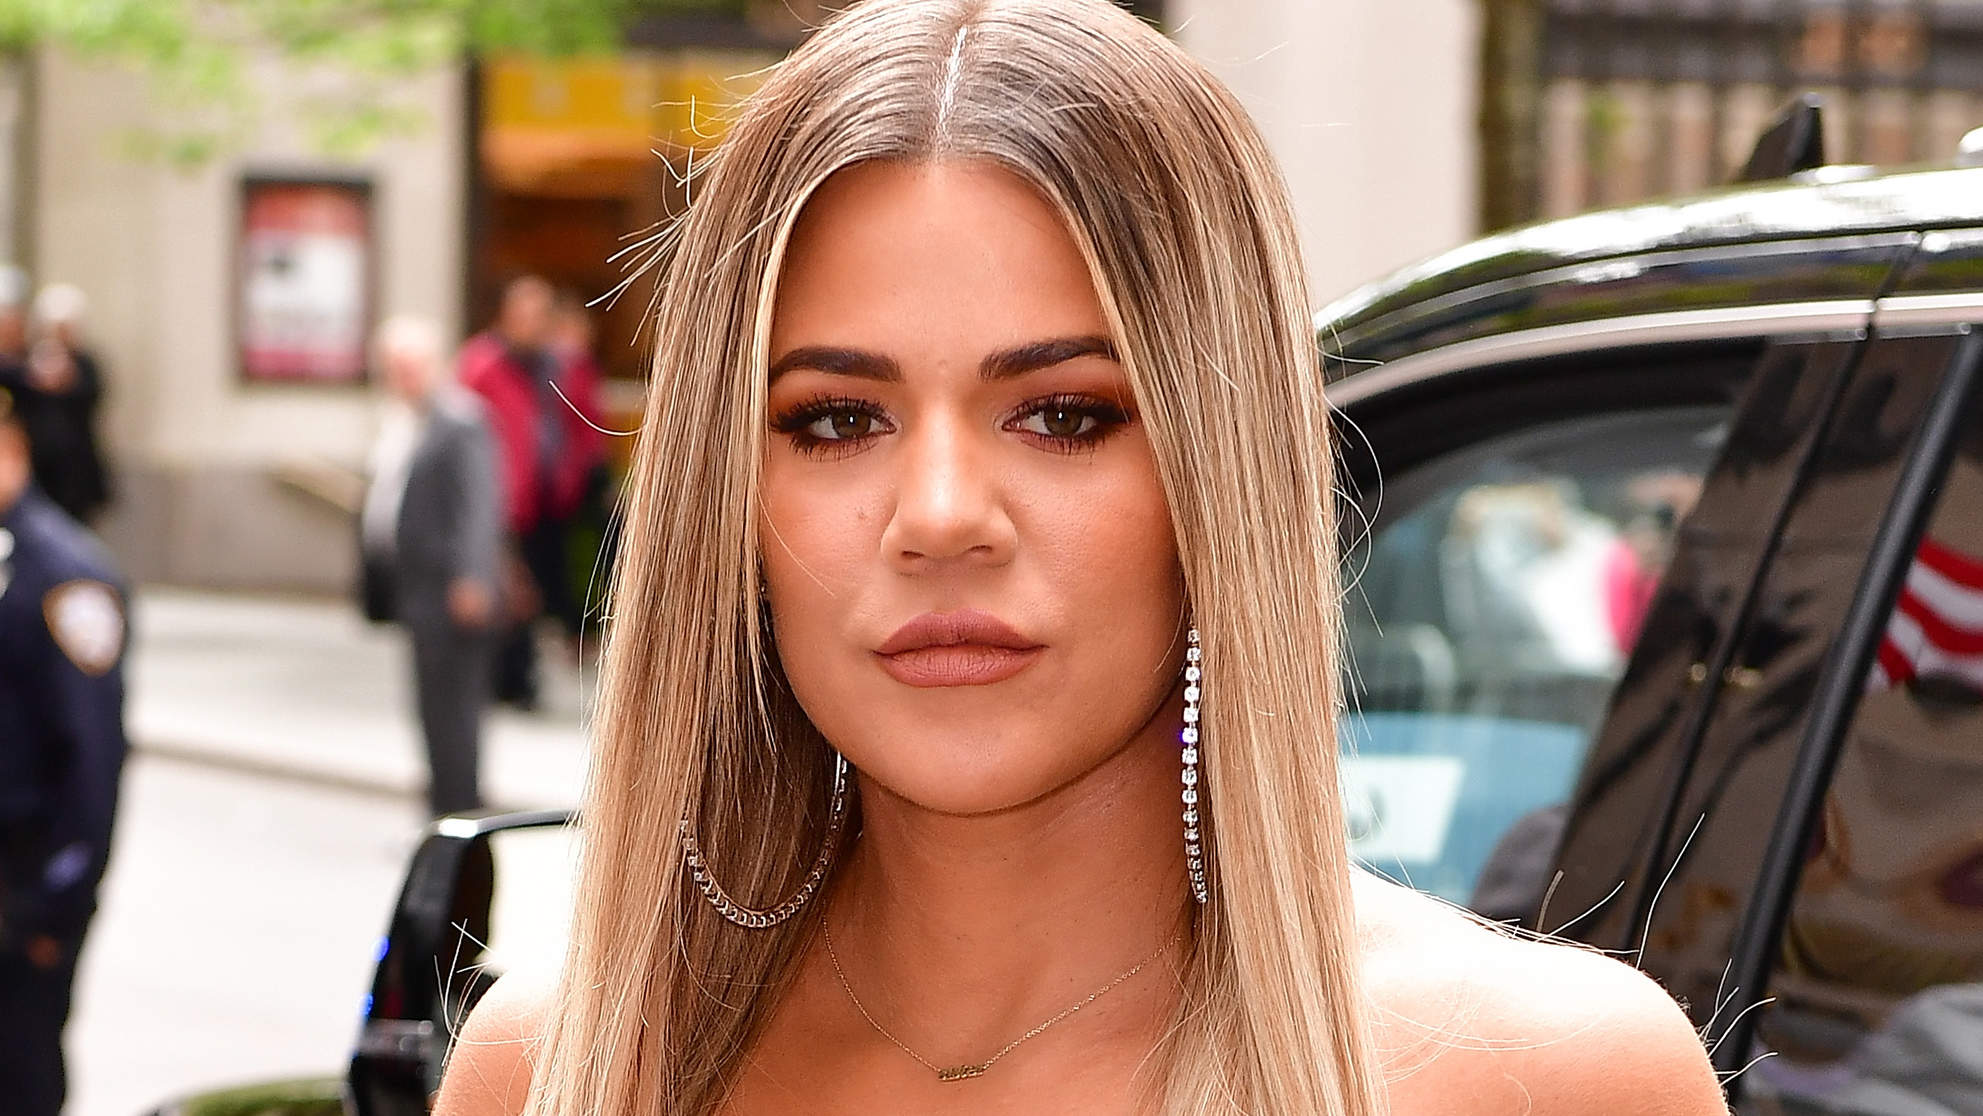 Khloé Kardashian 'Worried People Would Judge' Over Decision to Stop Breastfeeding